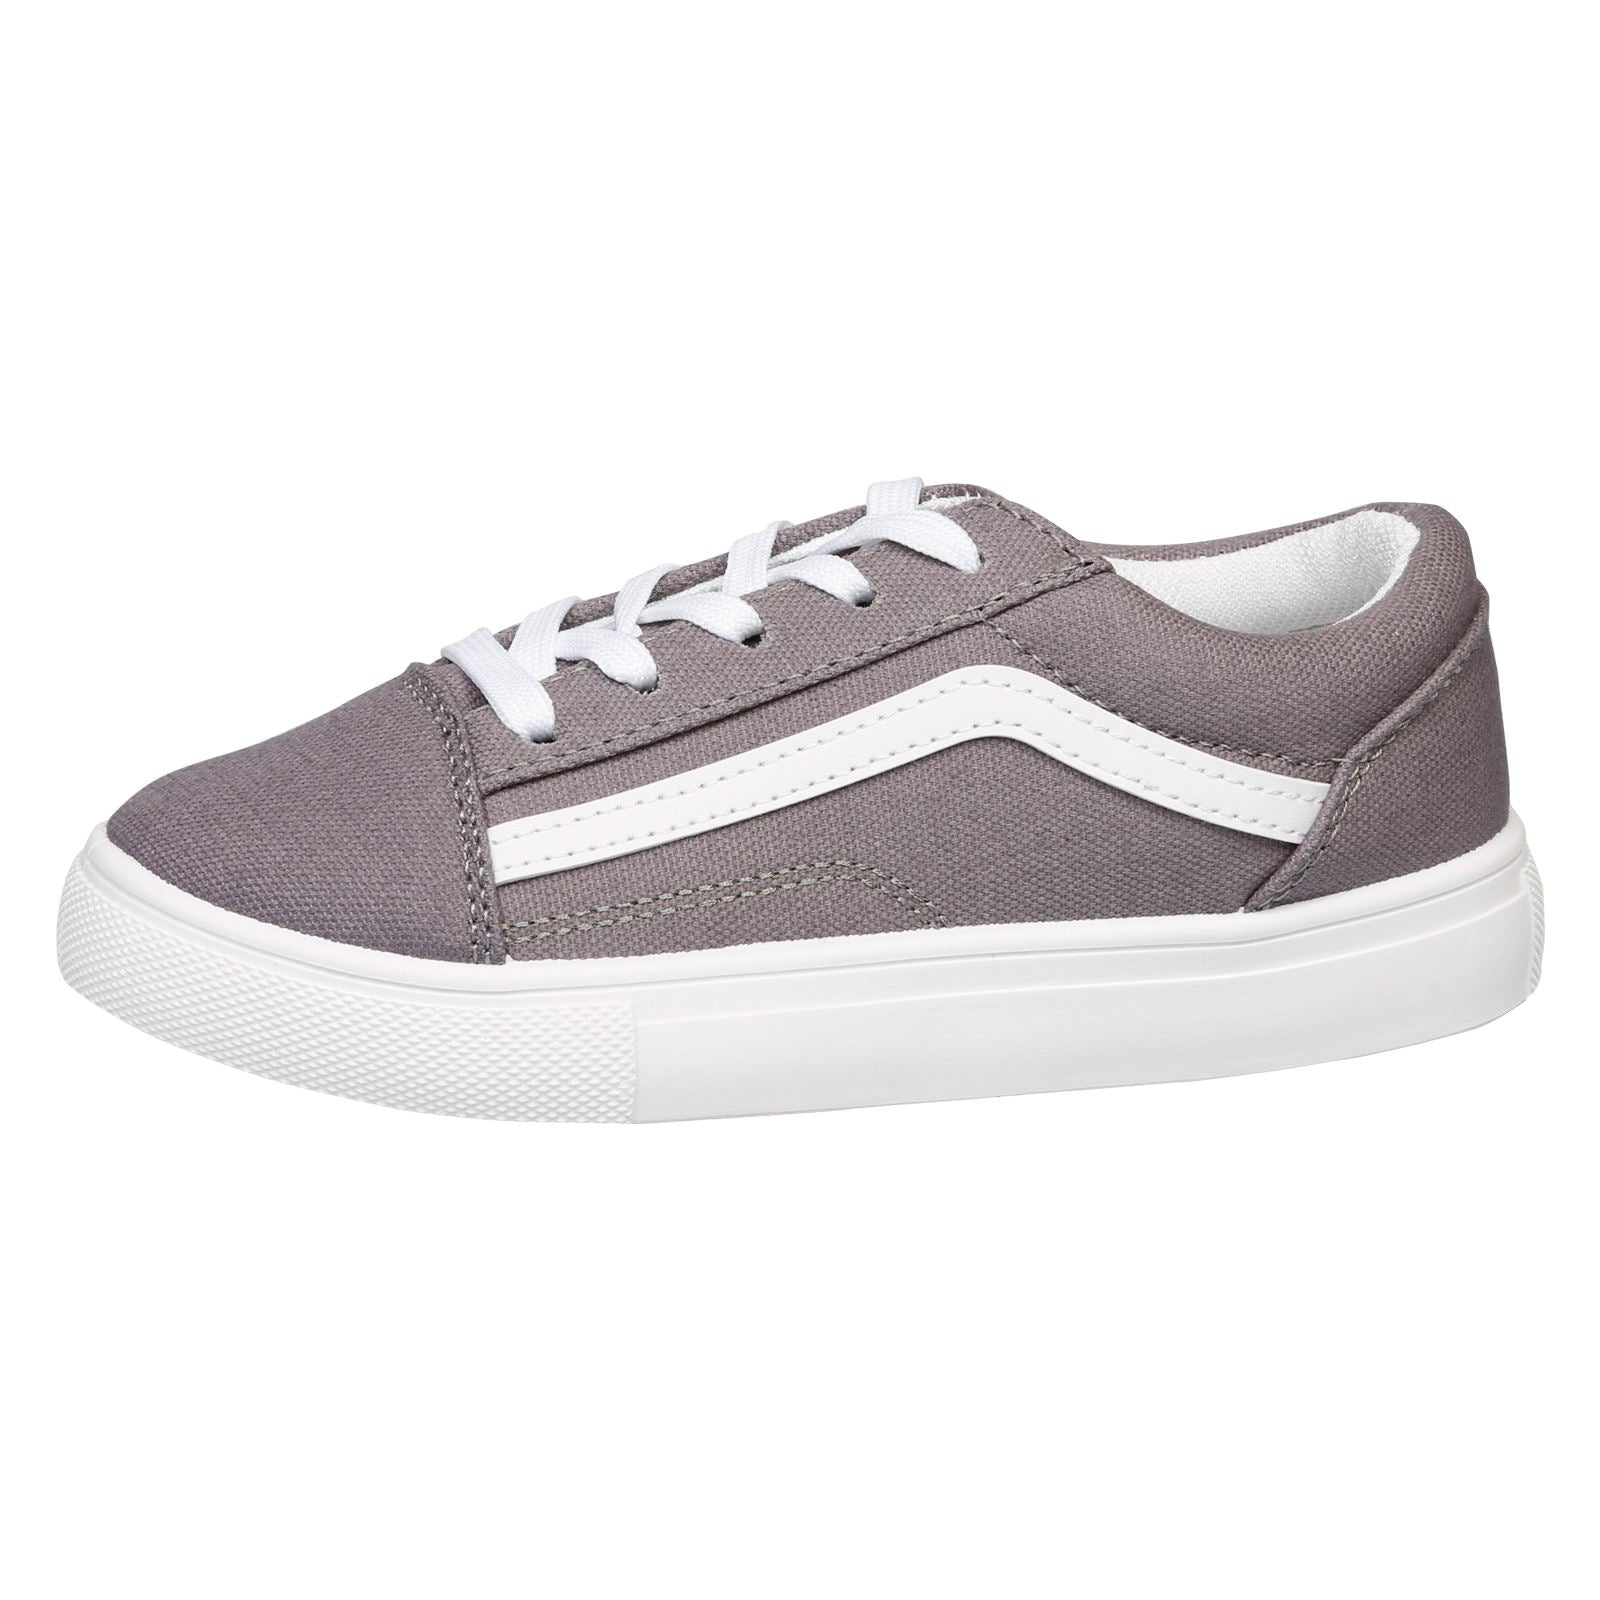 Hailee Girls Lace Up Trainers in Grey - Feet First Fashion